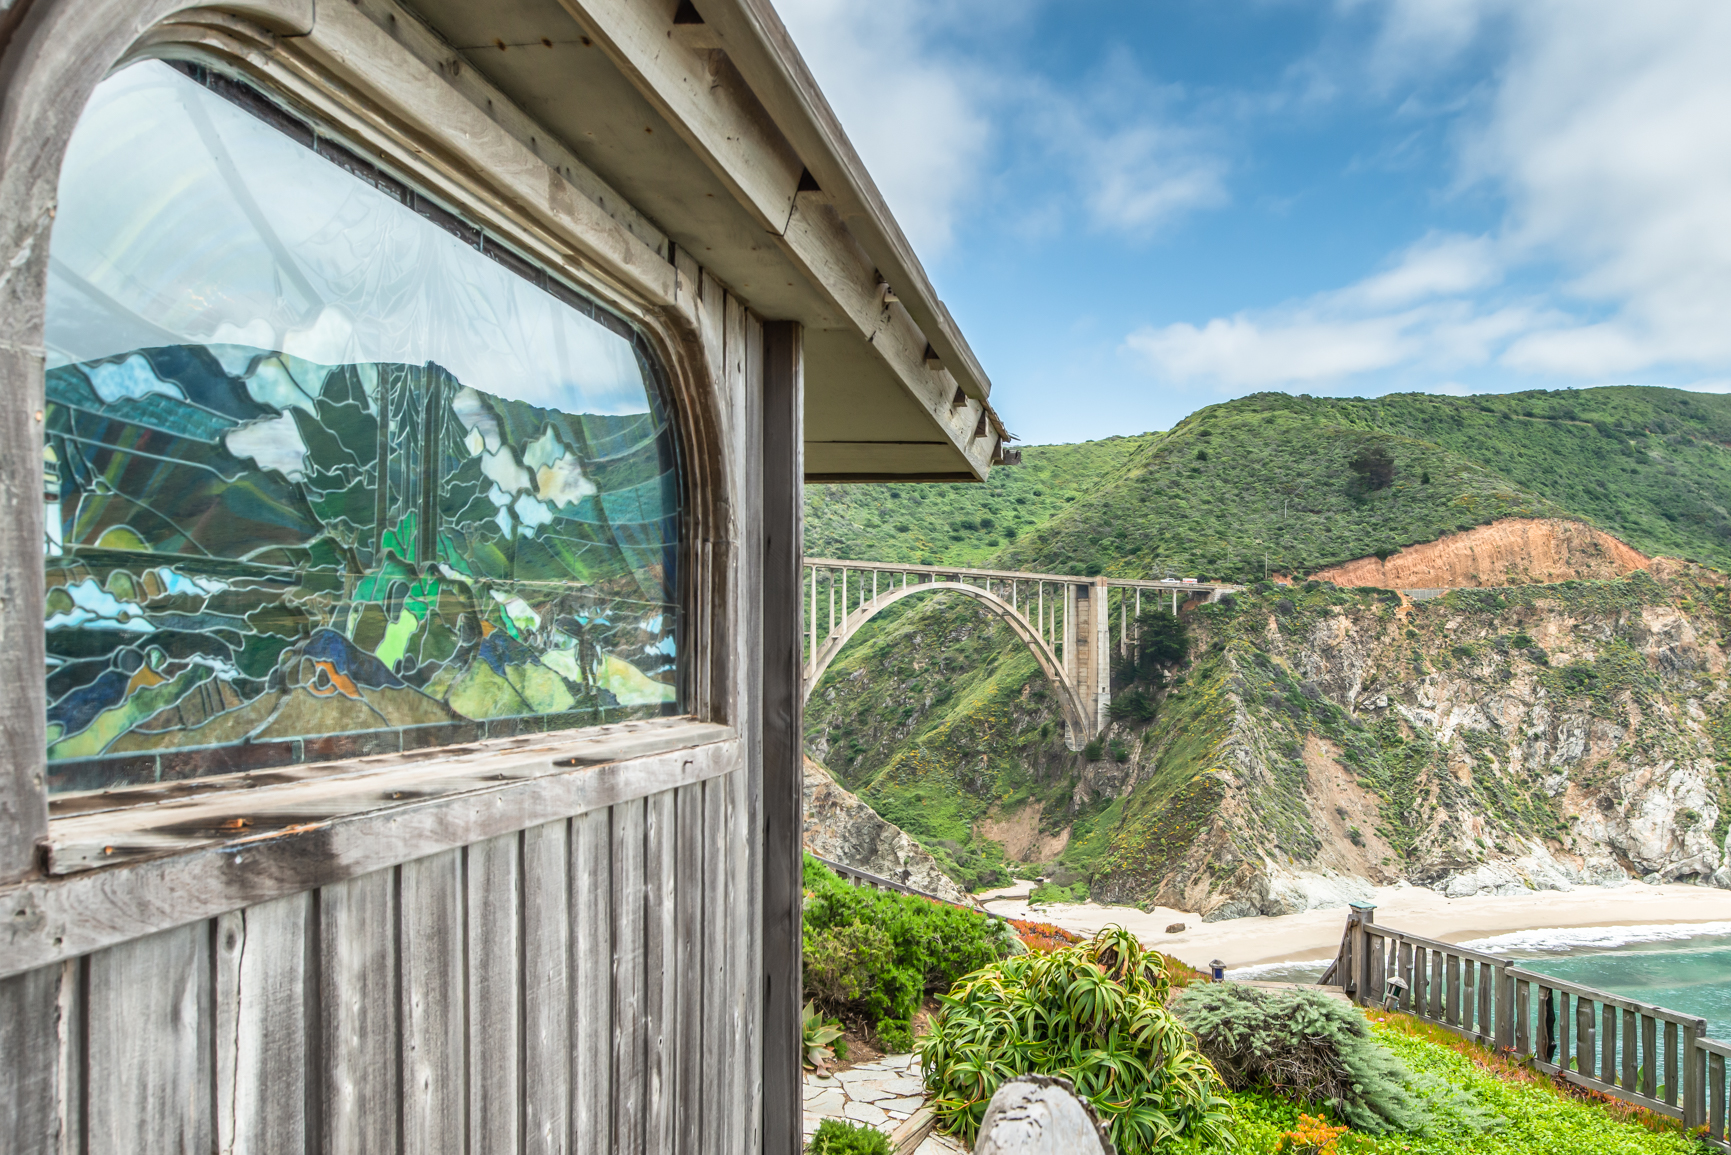 Coastal Living - For Sale: A California Dream House With the Most Iconic View of Big Sur